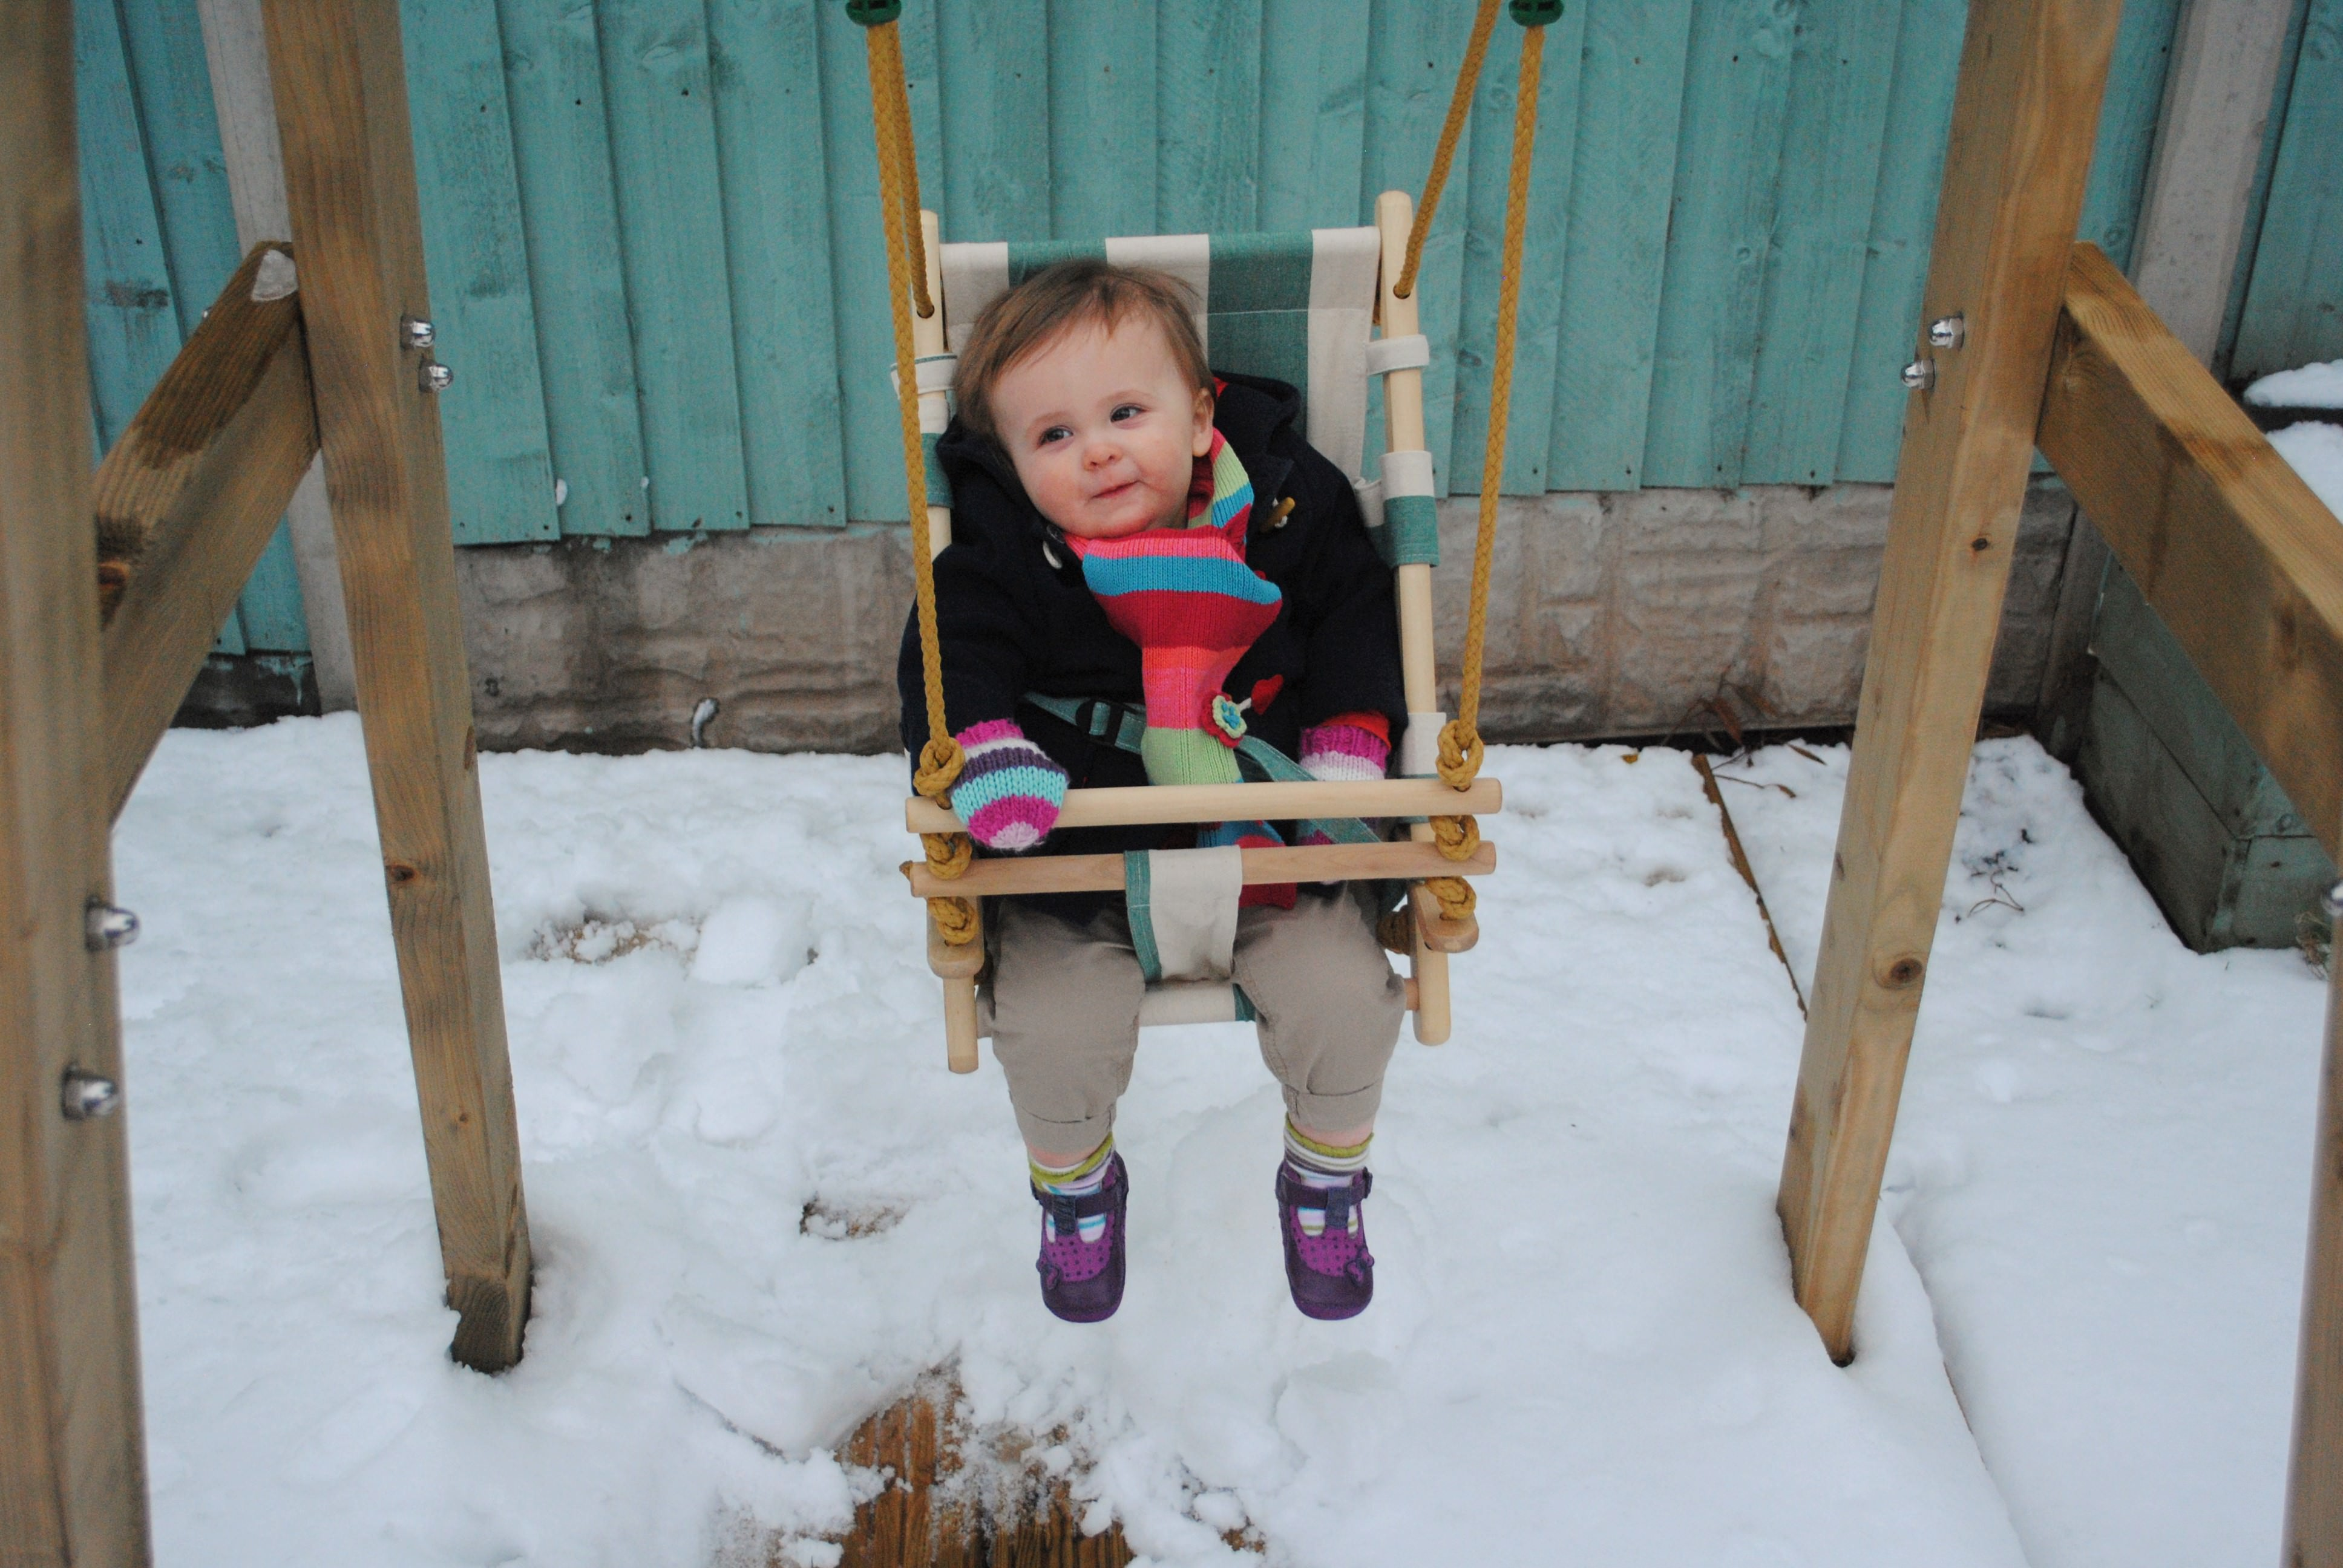 Eva's First Snow Day Looking Back